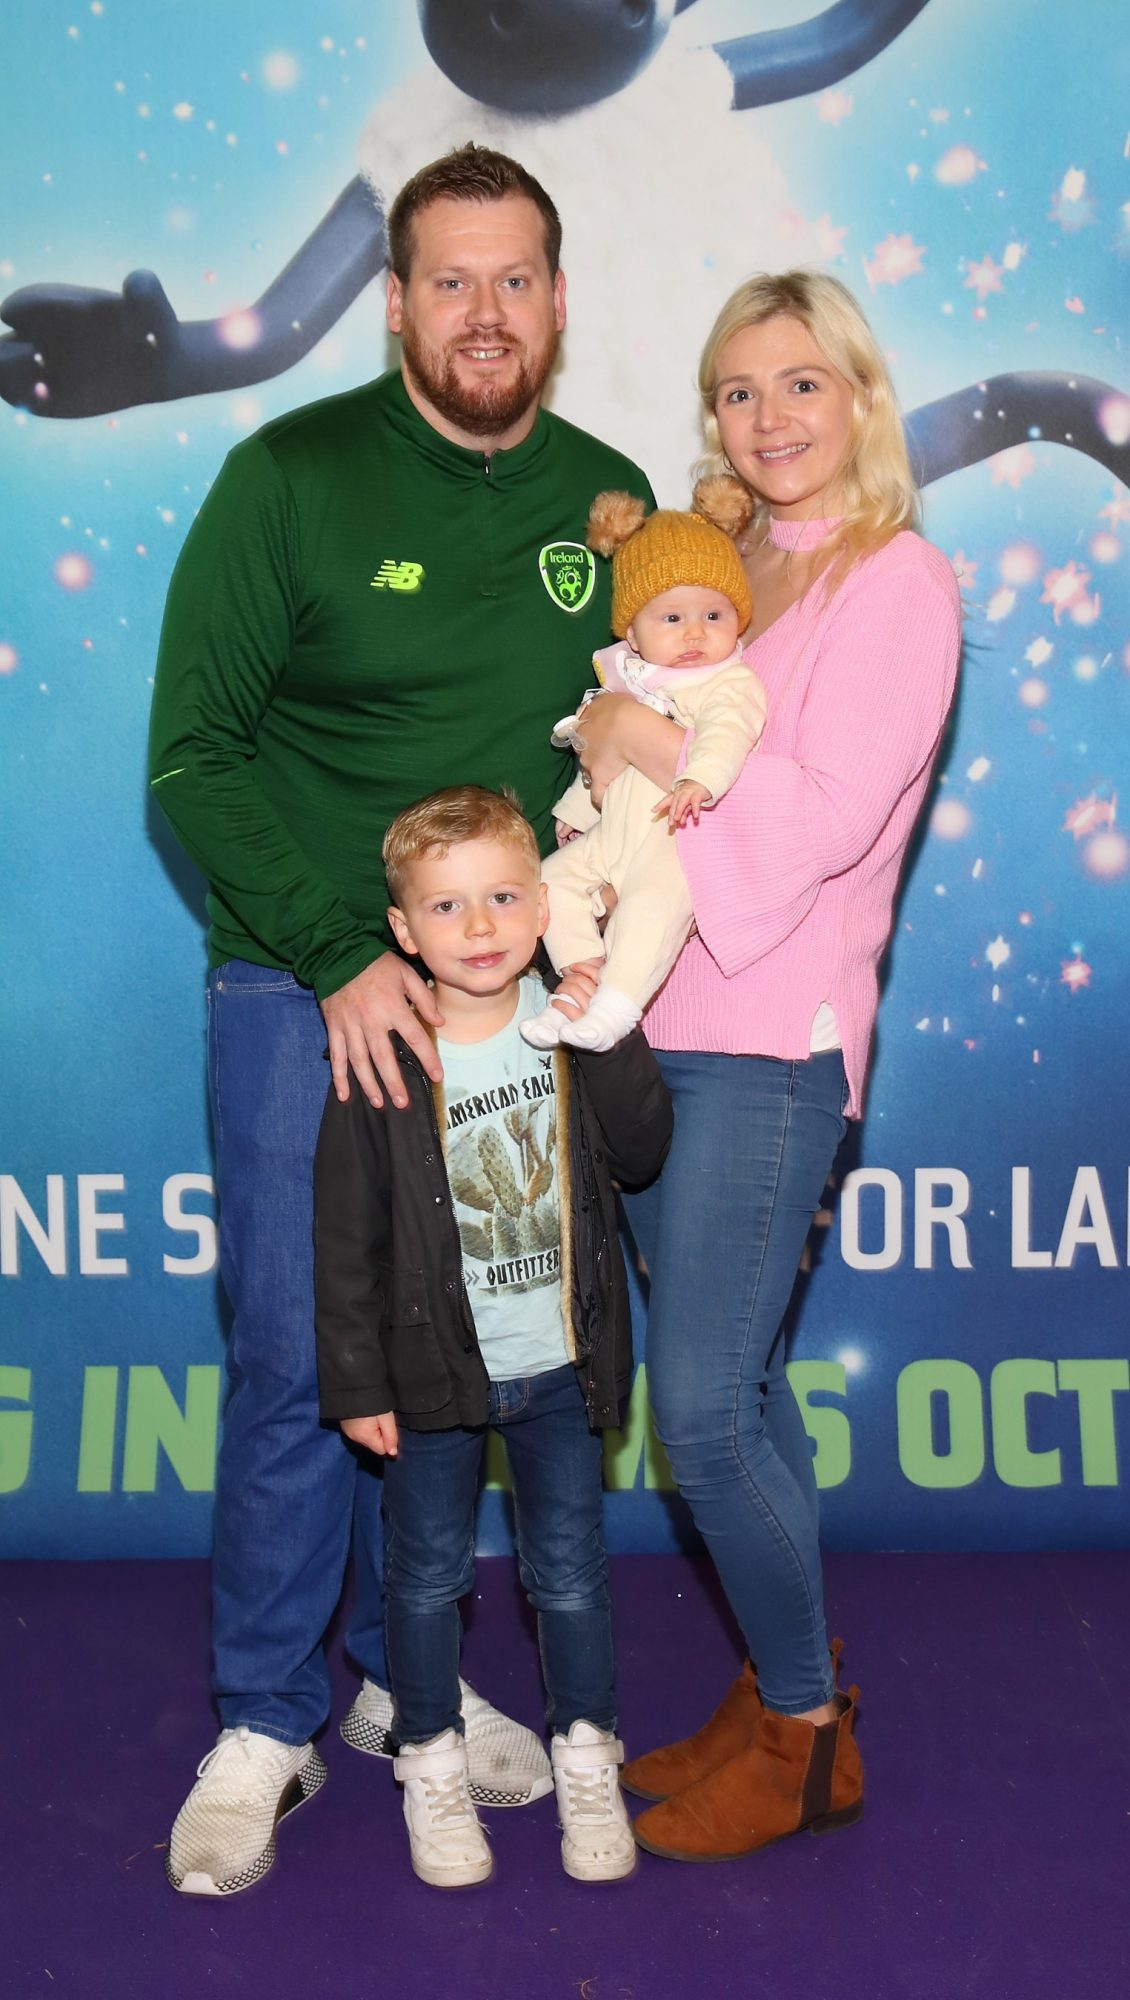 Peter Byrne,Tracey Quinn, Billy Byrne and Willow Byrne at the special preview screening of Shaun the Sheep at the Odeon Cinema In Point Square, Dublin.  Pic: Brian McEvoy Photography